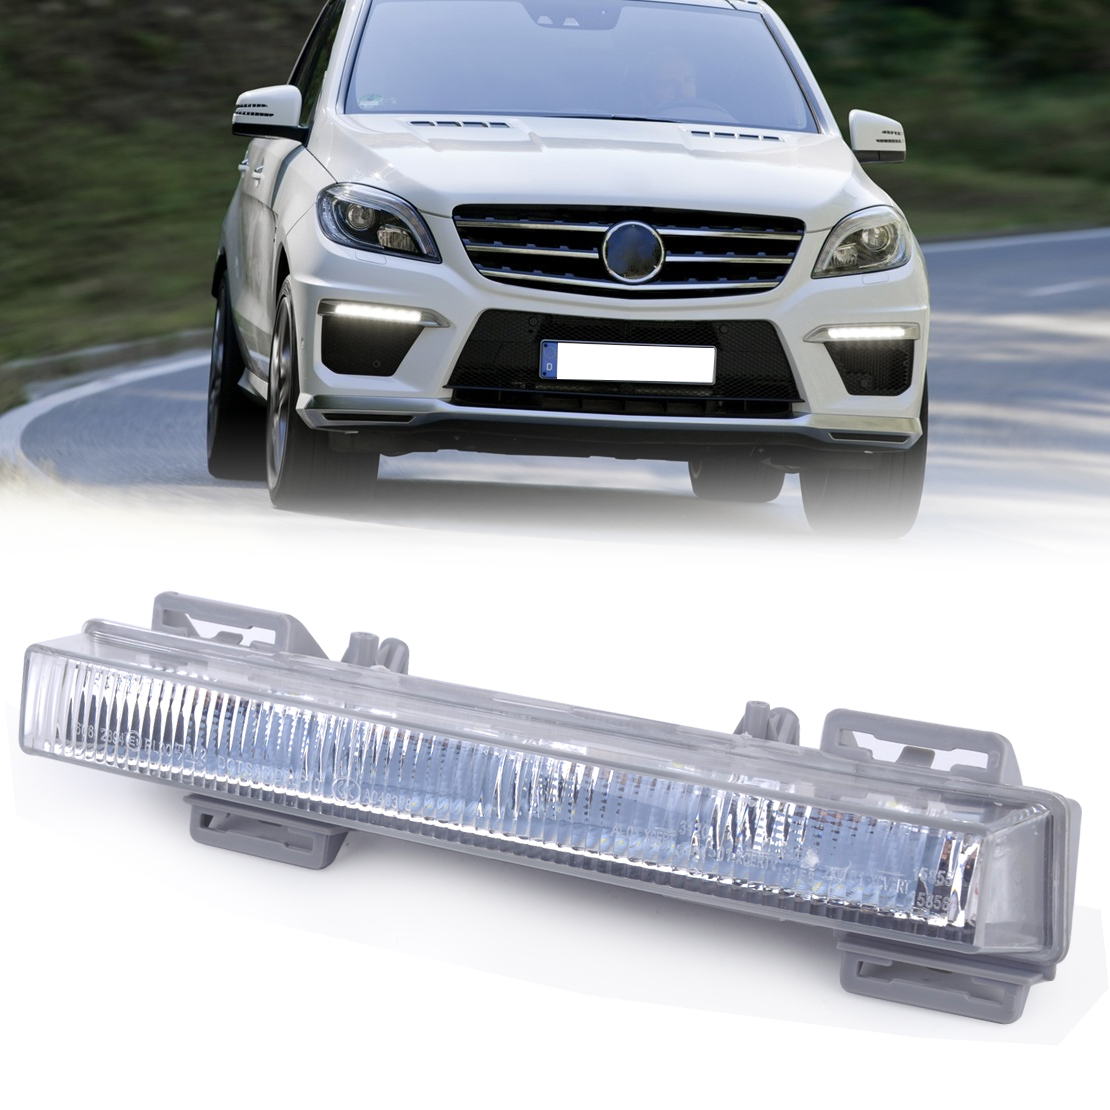 beler 1pc Front Left side LED Daytime Running Light Driving Lamp for Mercedes Benz W166 ML350 ML500 ML550 X204 GLK250 2049065401 front fog light for mercedes benz w163 ml270 ml230 ml320 ml400 ml350 ml500 ml430 ml55